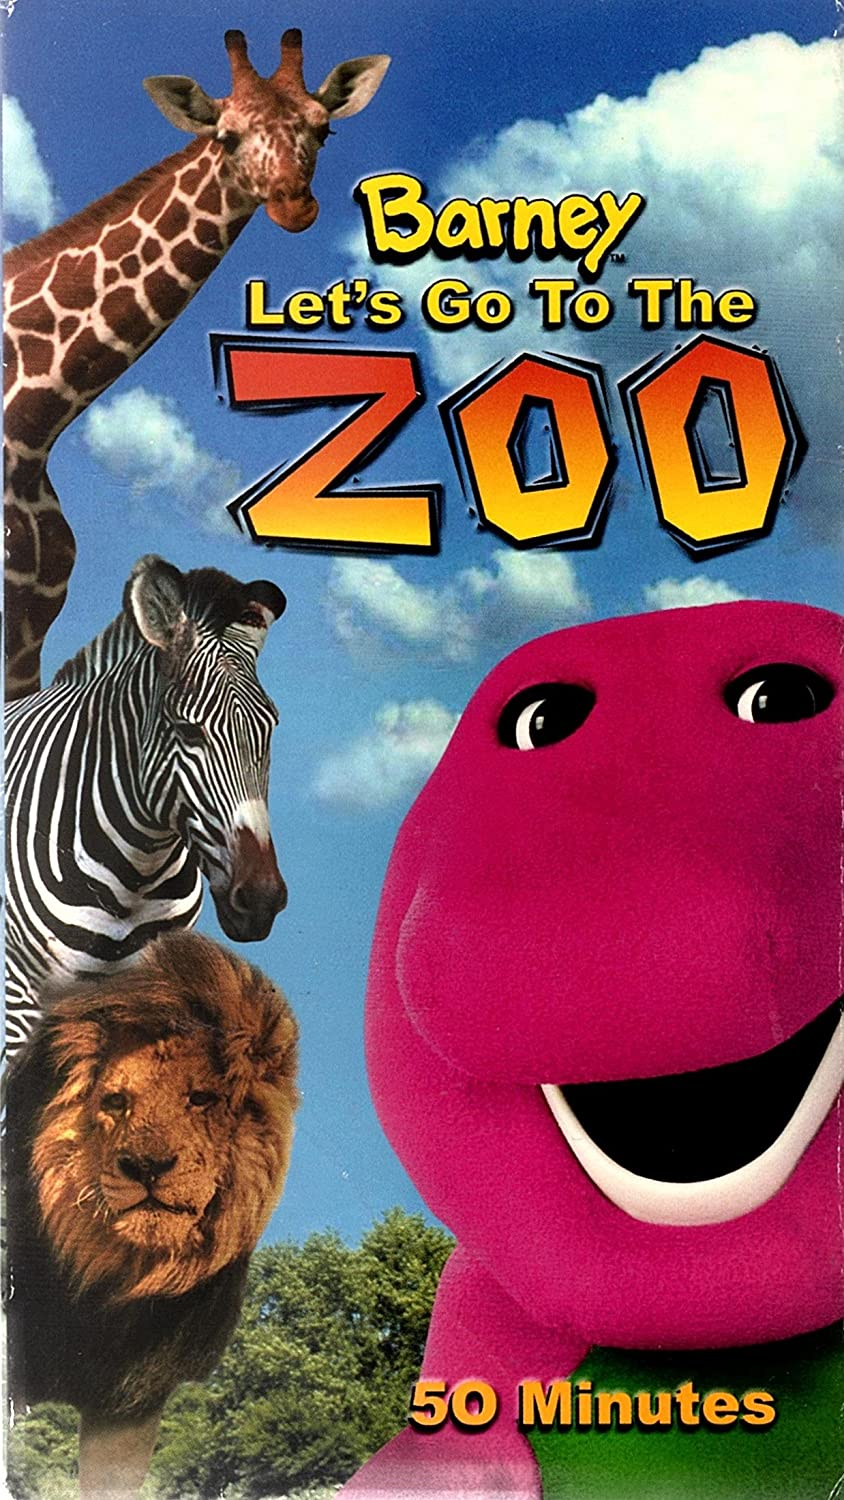 Amazon.com: Let\'s Go to the Zoo [VHS]: Barney: Movies & TV